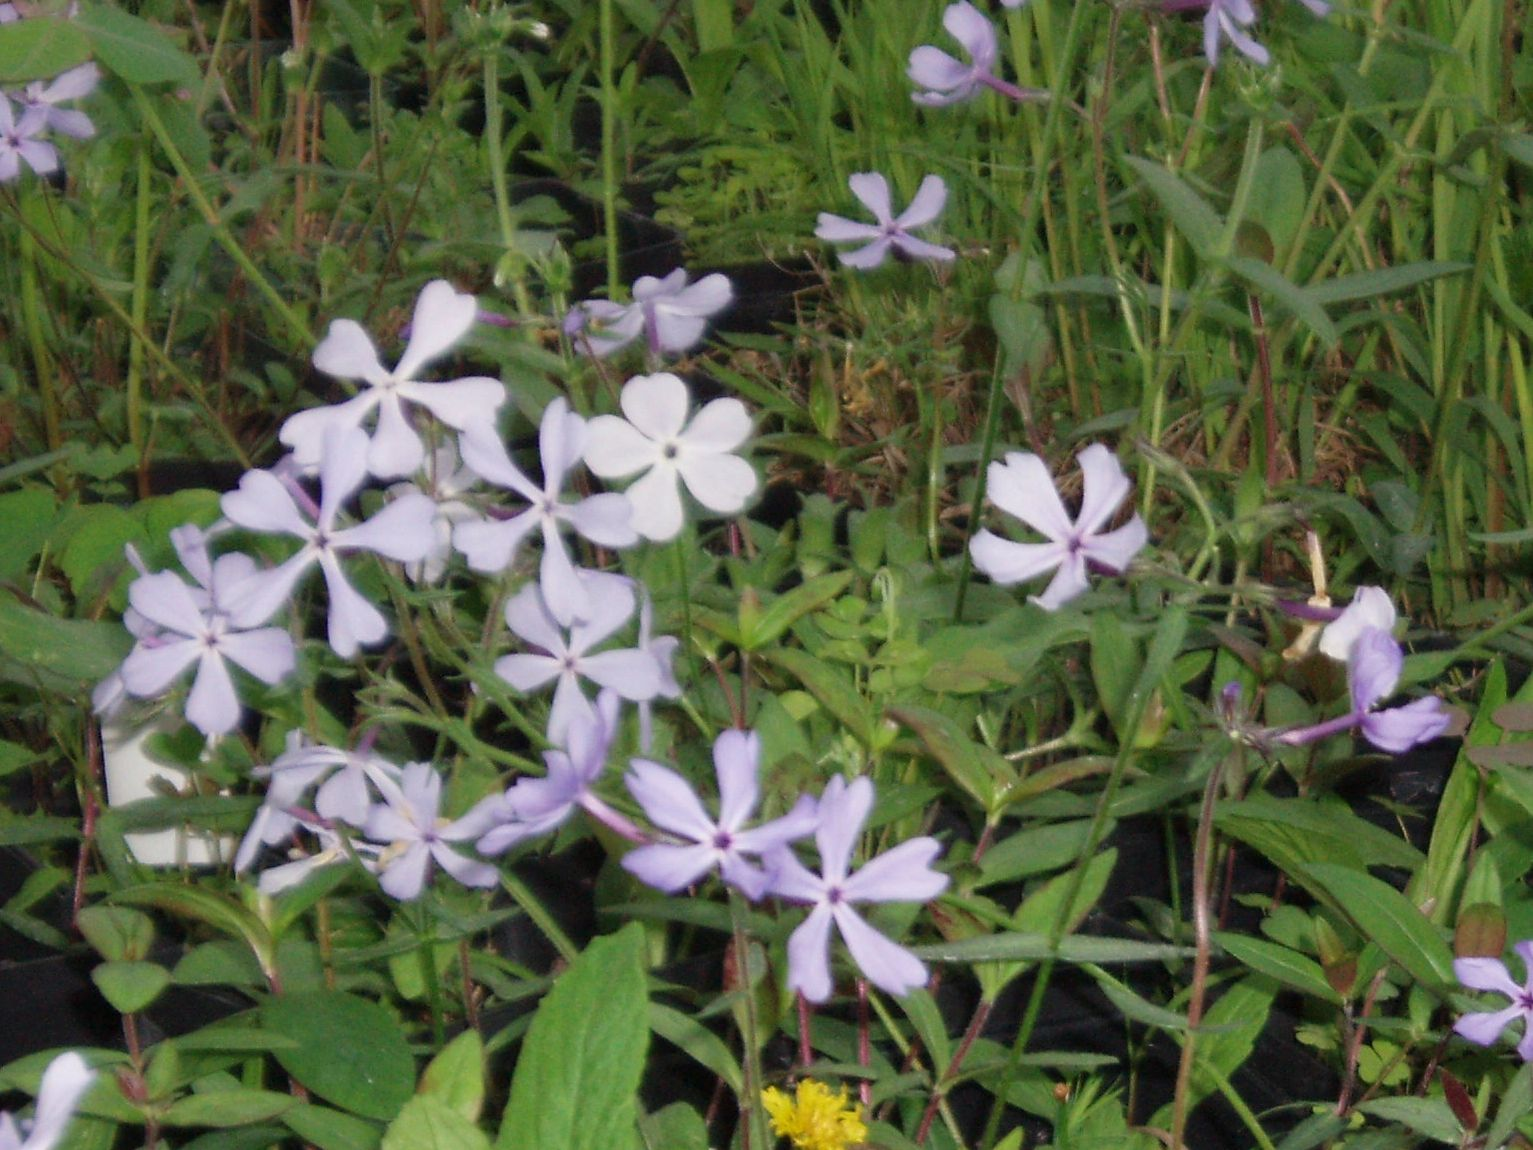 "{""blocks"":[{""key"":""52sh4"",""text"":"" Phlox divaricata Blue Woodland Phlox - potted plants email john@easywildflowers.com  "",""type"":""unstyled"",""depth"":0,""inlineStyleRanges"":[],""entityRanges"":[],""data"":{}}],""entityMap"":{}}"